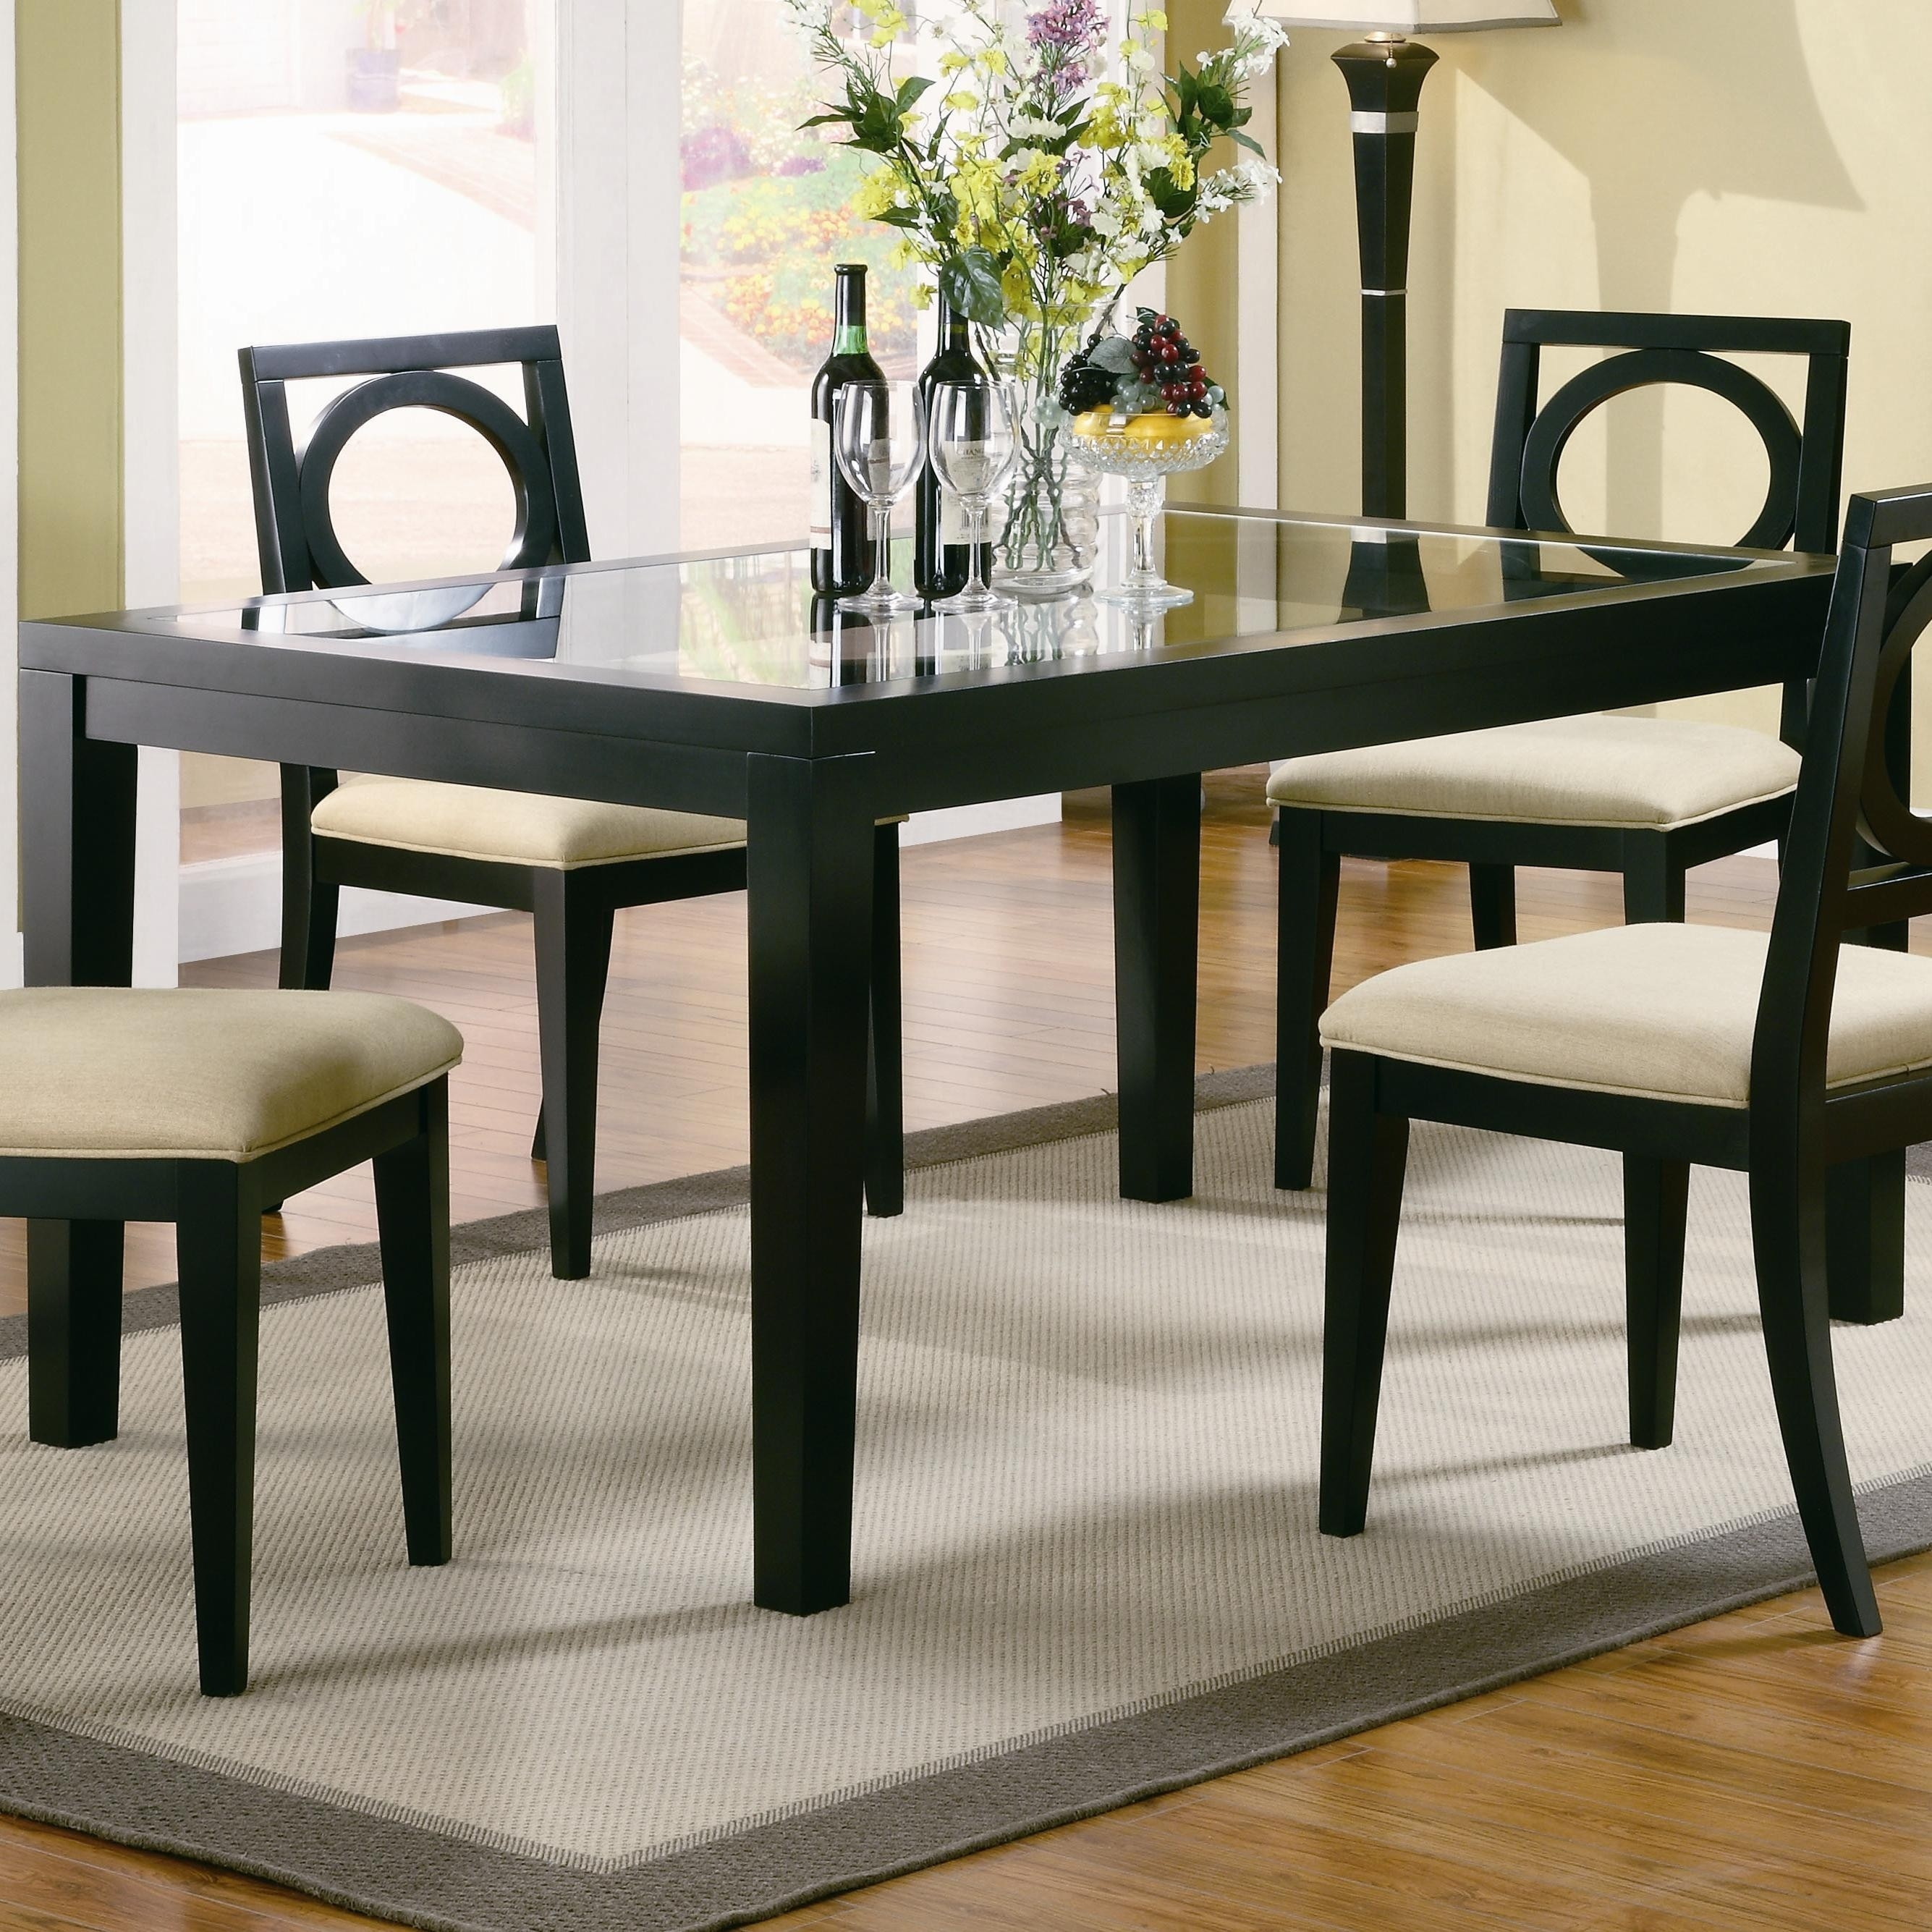 black dining room sets for cheap | Dining Room Kitchen Best Dining Set Small Space Cheap ...